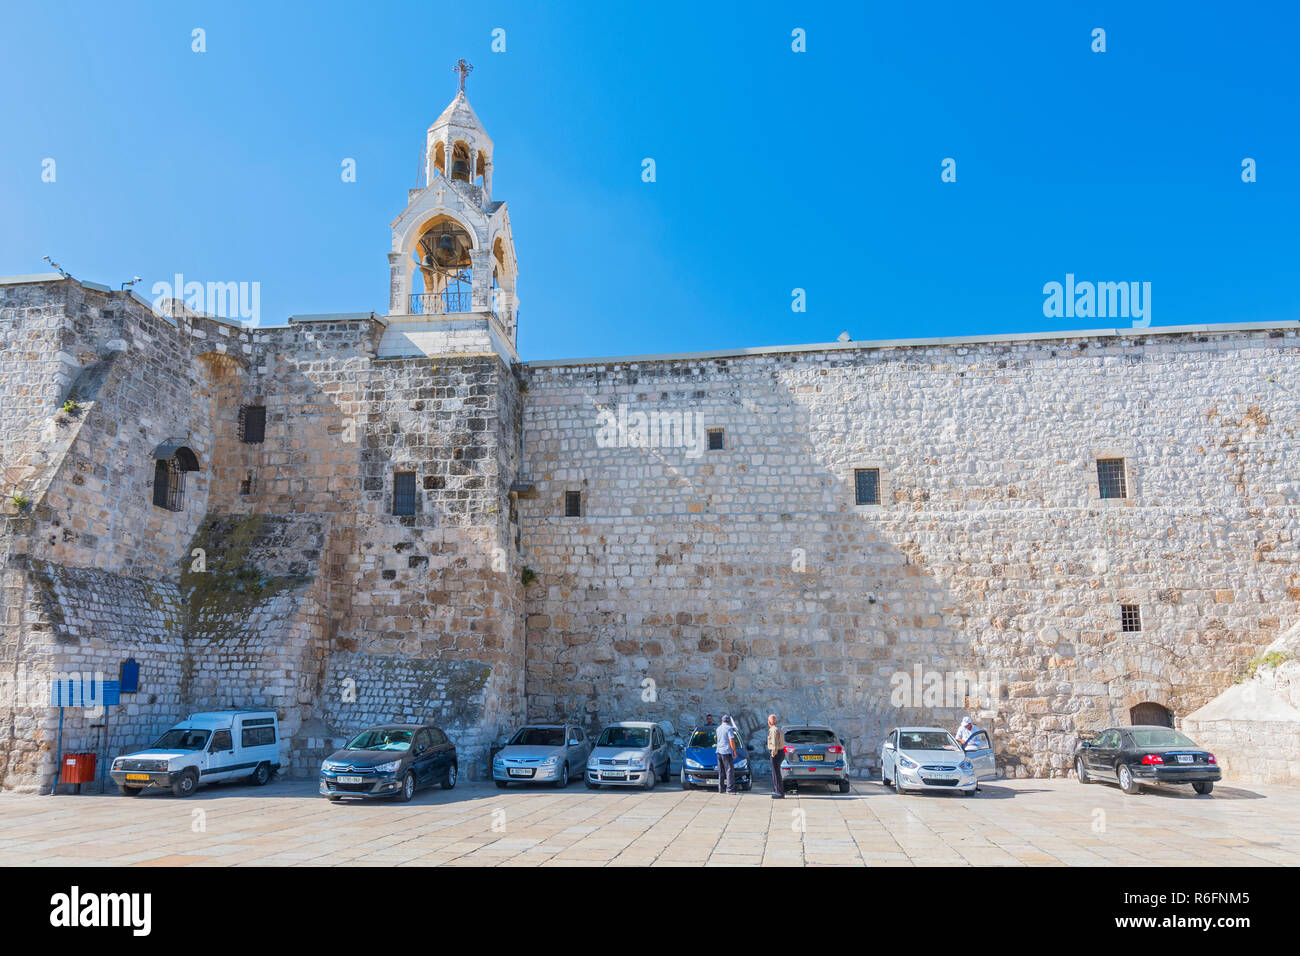 The Church Of The Nativity In Manger Square, Bethlehem, Palestine It Takes Its Name From The Manger Where Jesus Is Said To Have Been Born Which, Accor - Stock Image